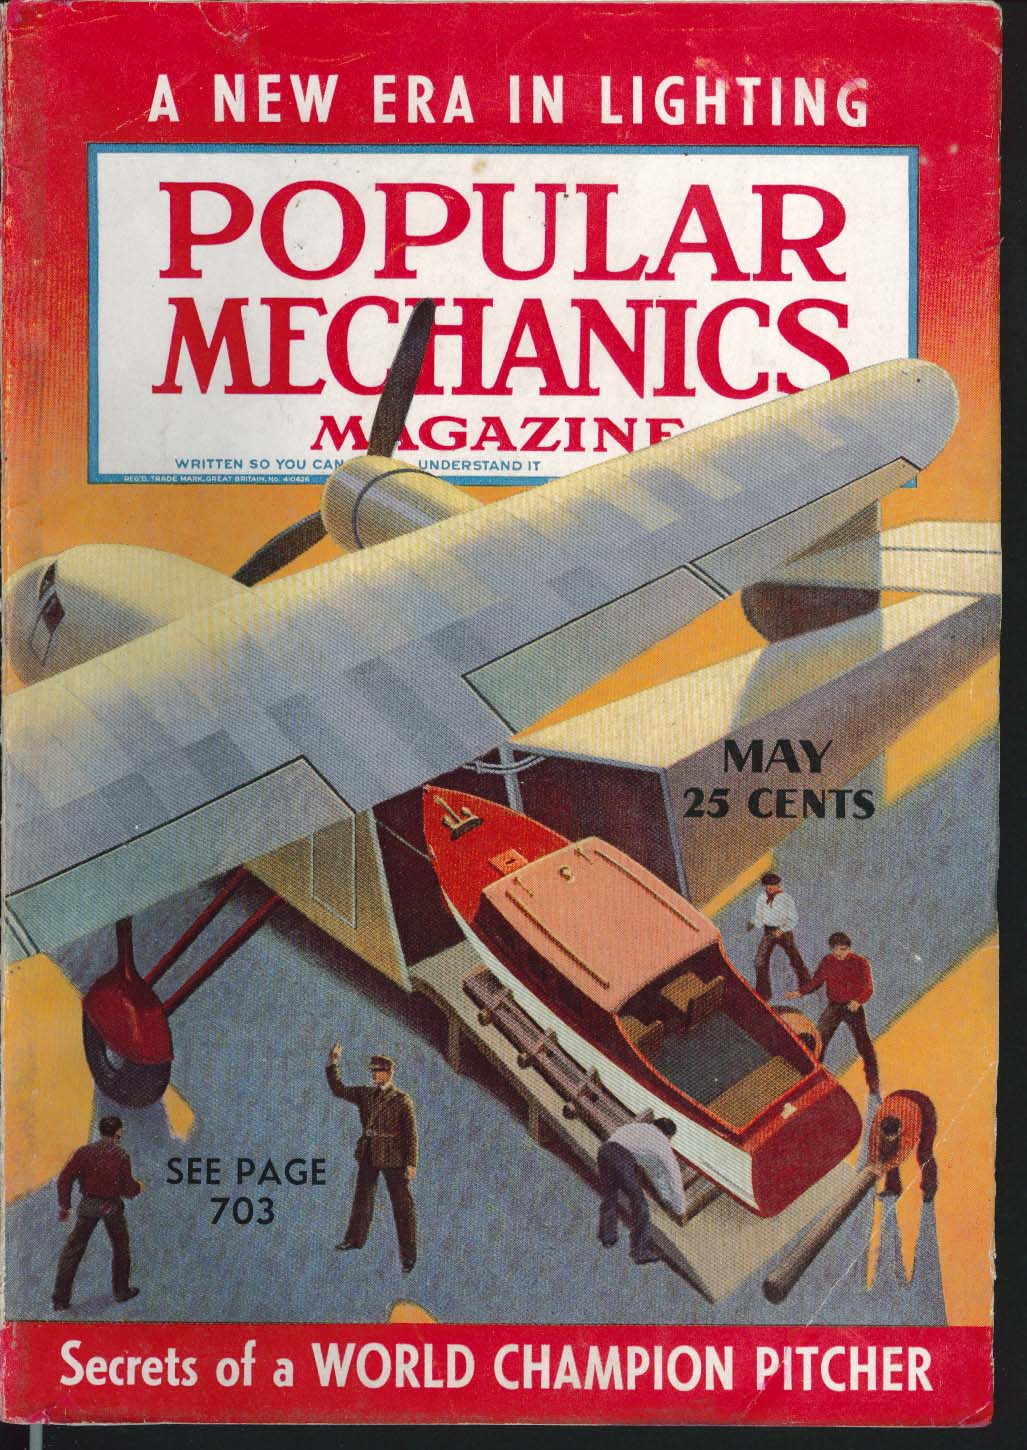 Image for POPULAR MECHANICS Monte Pearson Baseball Pitching Sampson Comet Speedster 5 1939